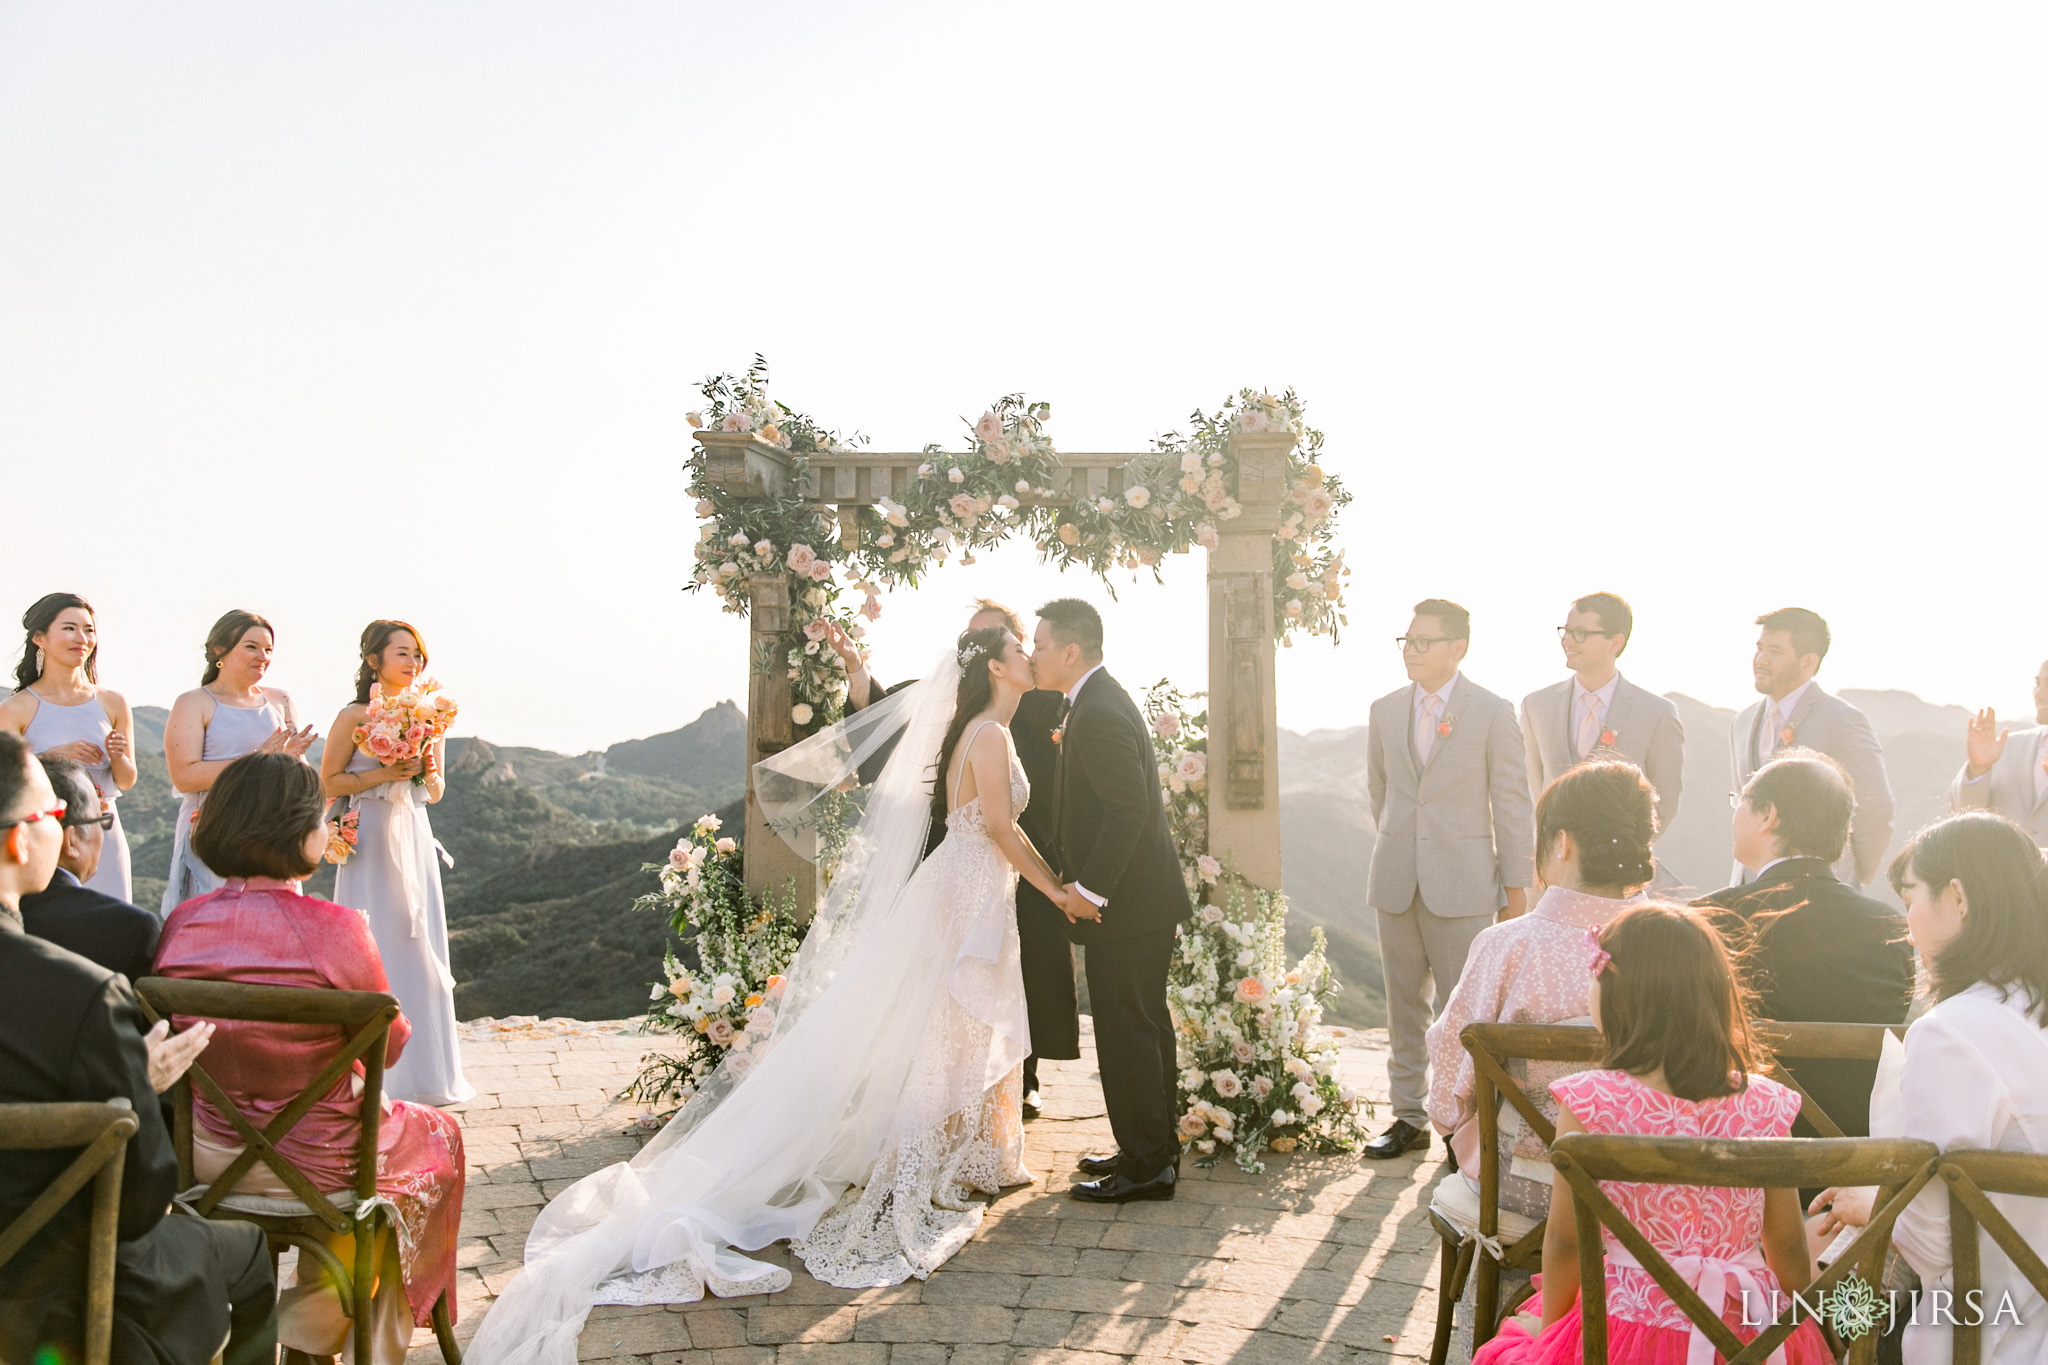 029 malibu rocky oaks filmic wedding photography